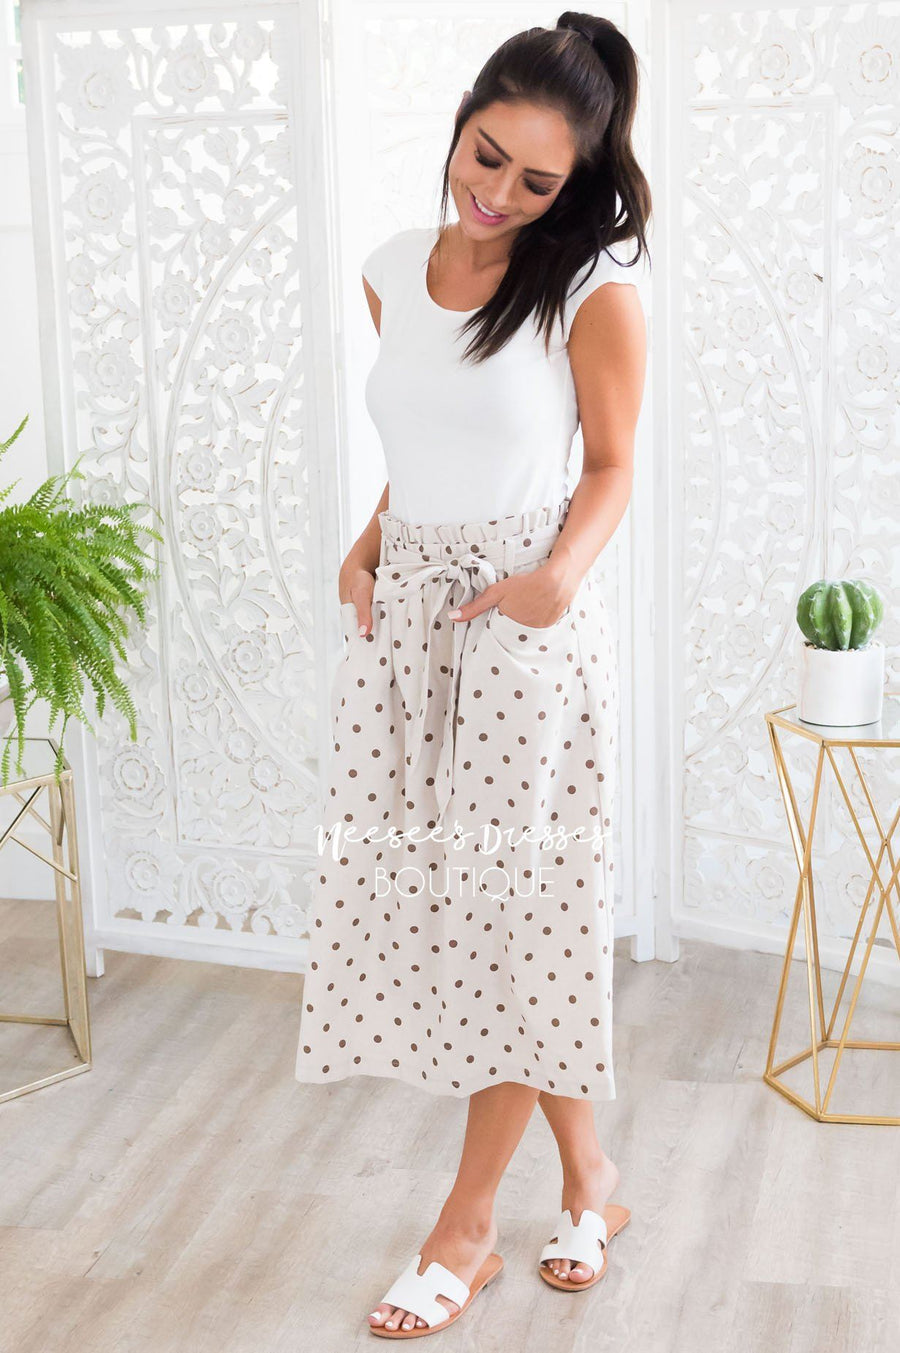 Lots of Dots Modest Skirt